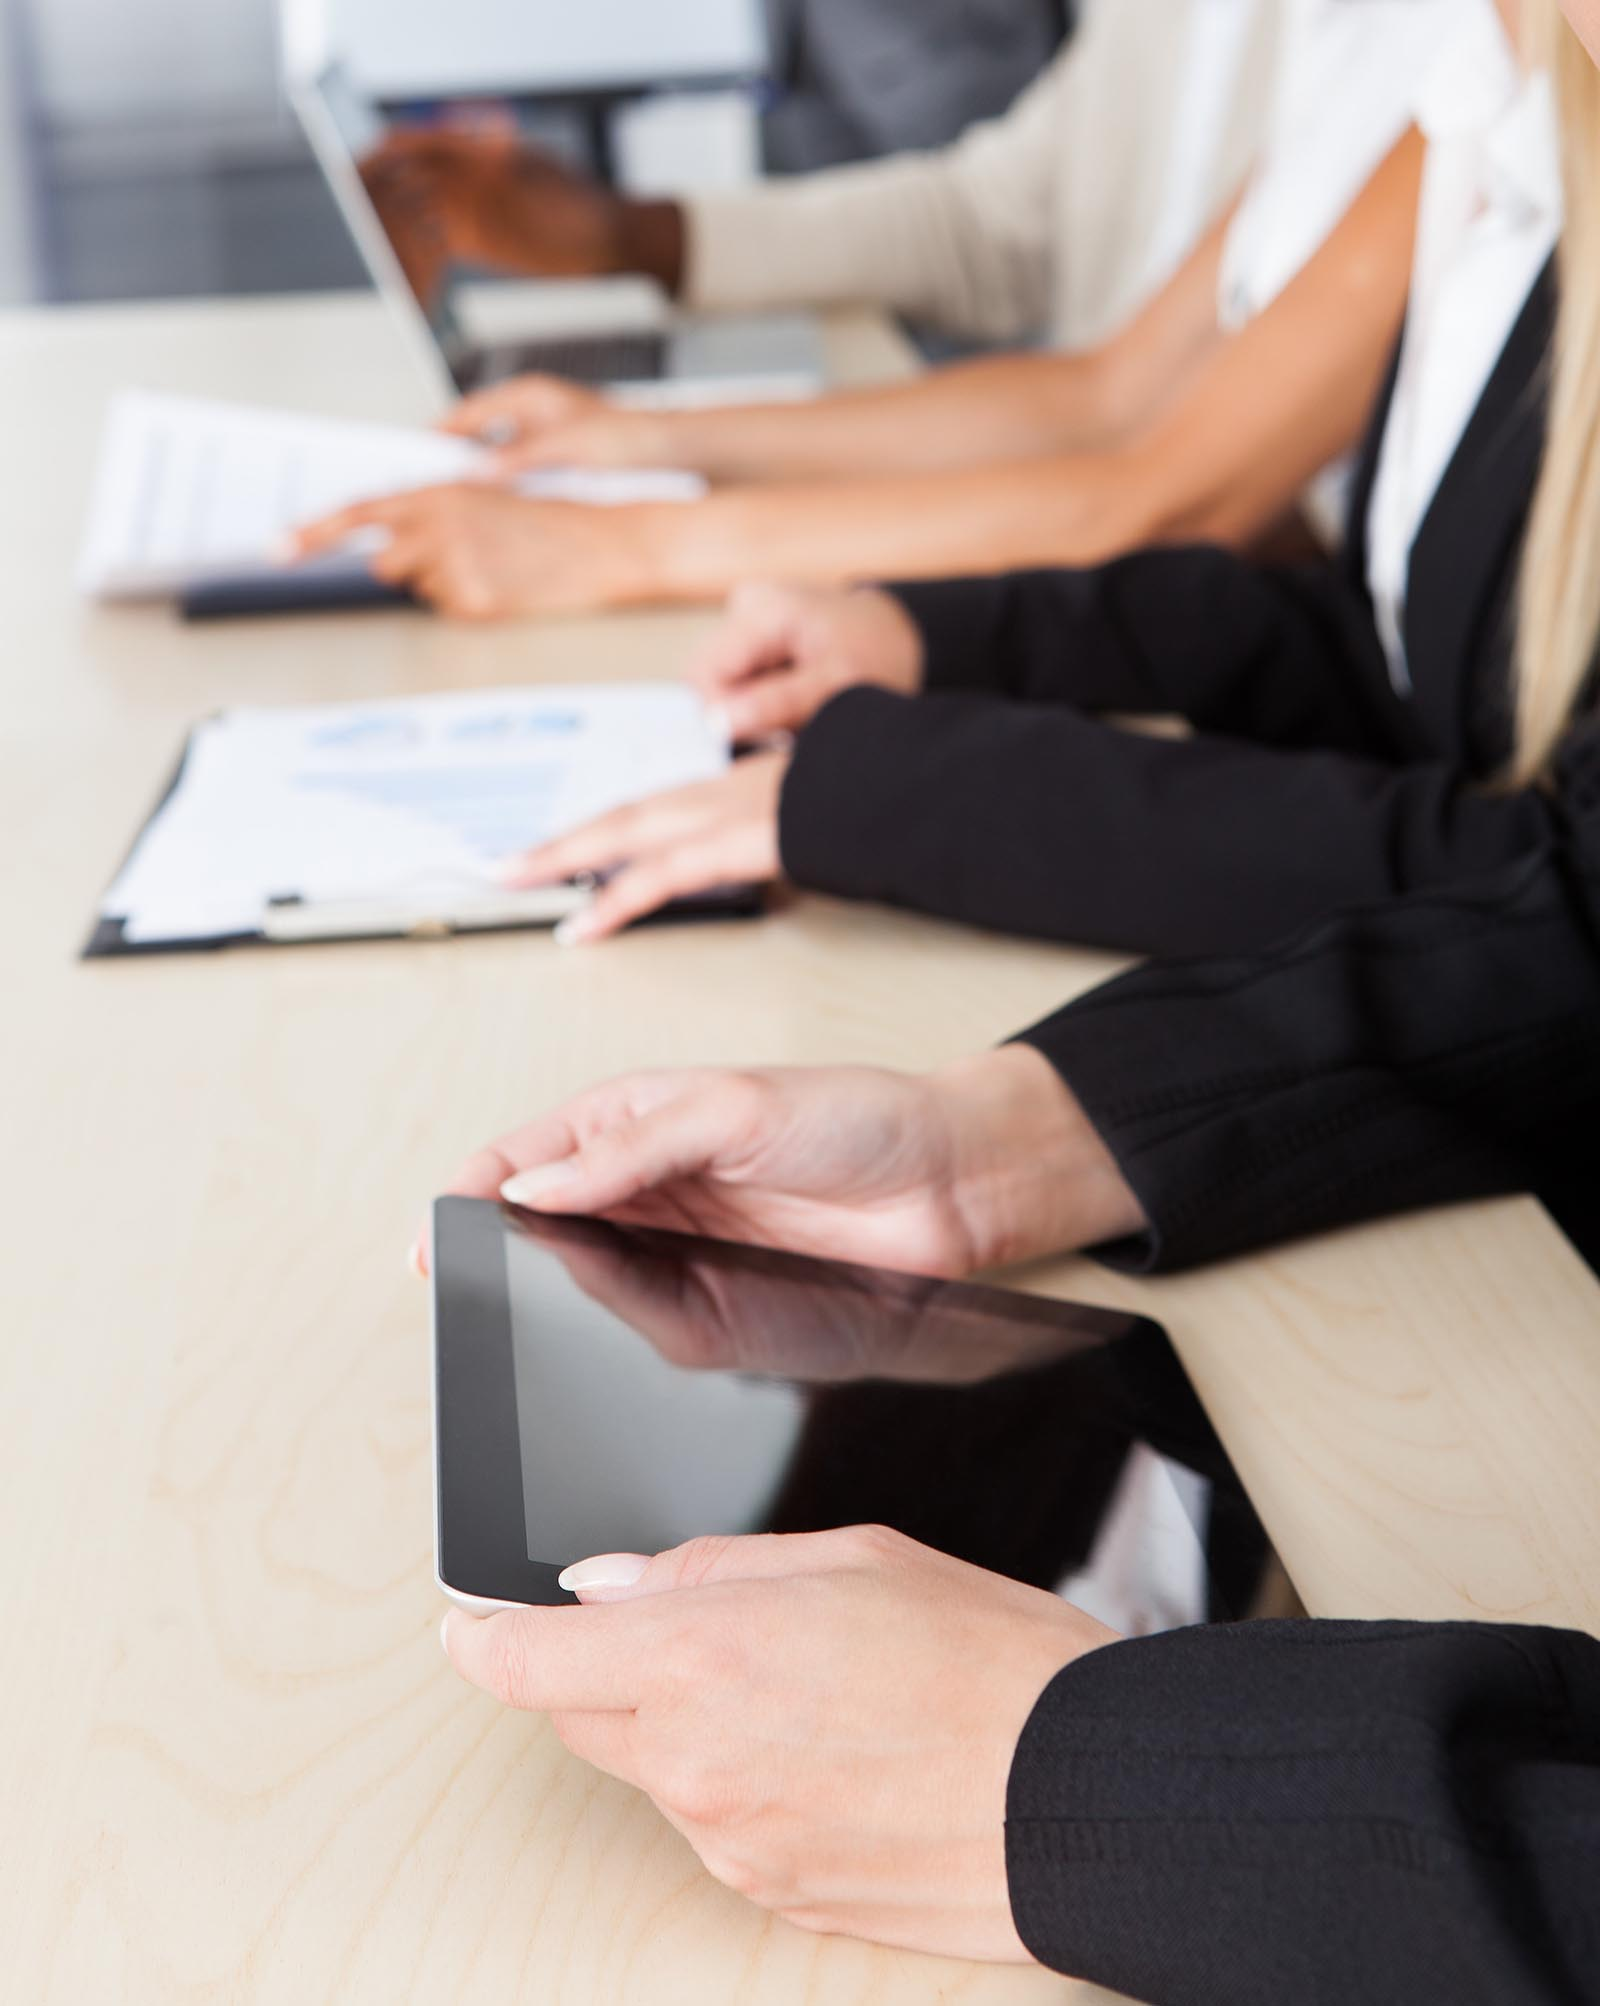 employee training tablet and laptop